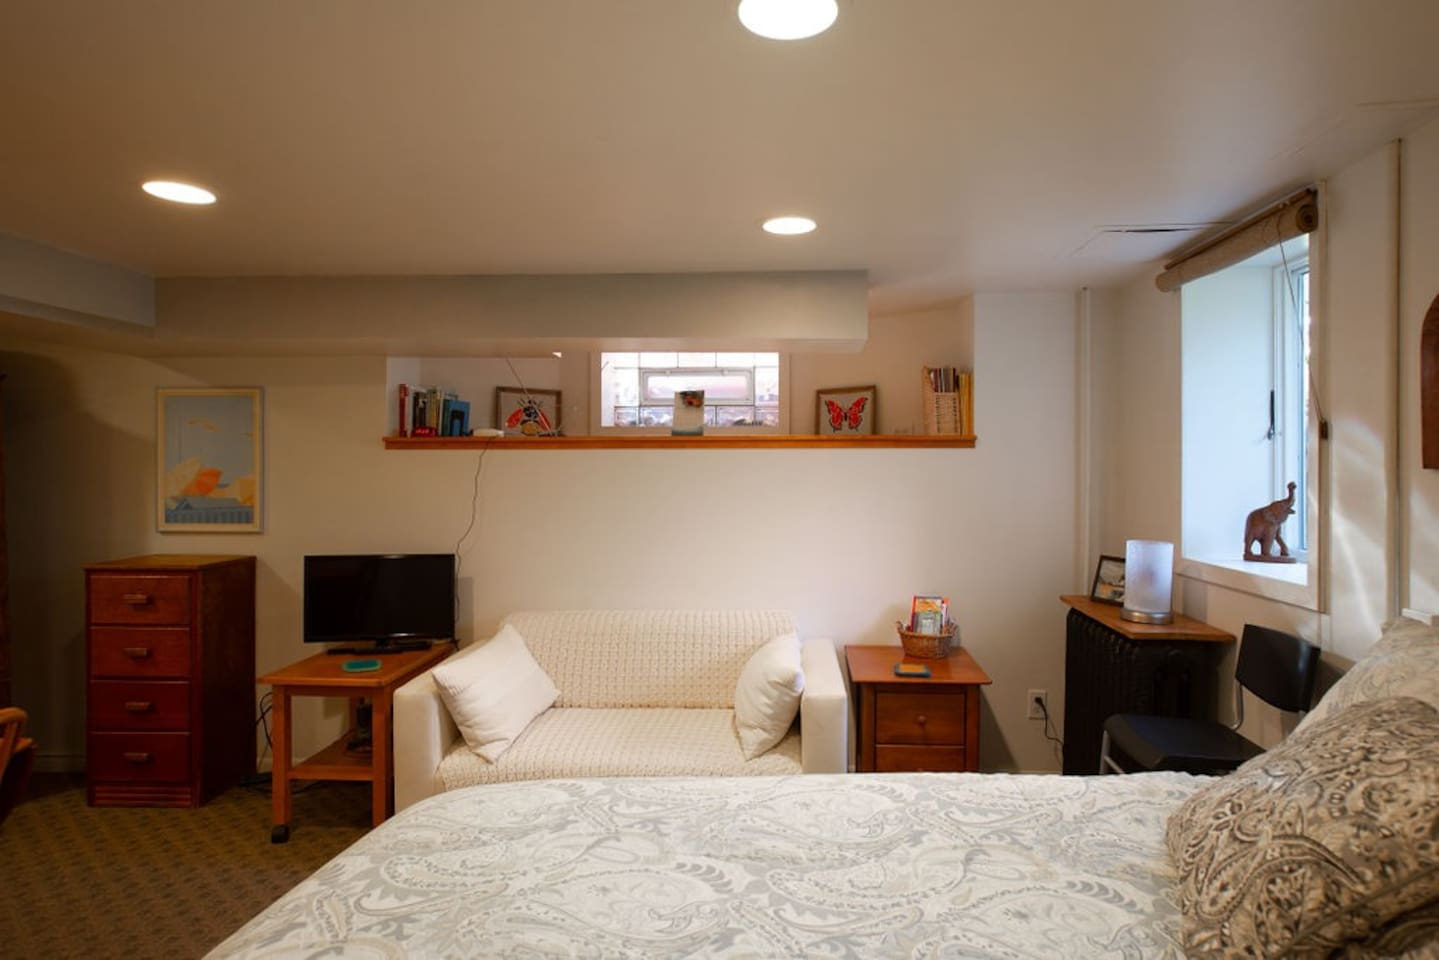 Easement window. Sweet little couch.   Small TV and a dresser.